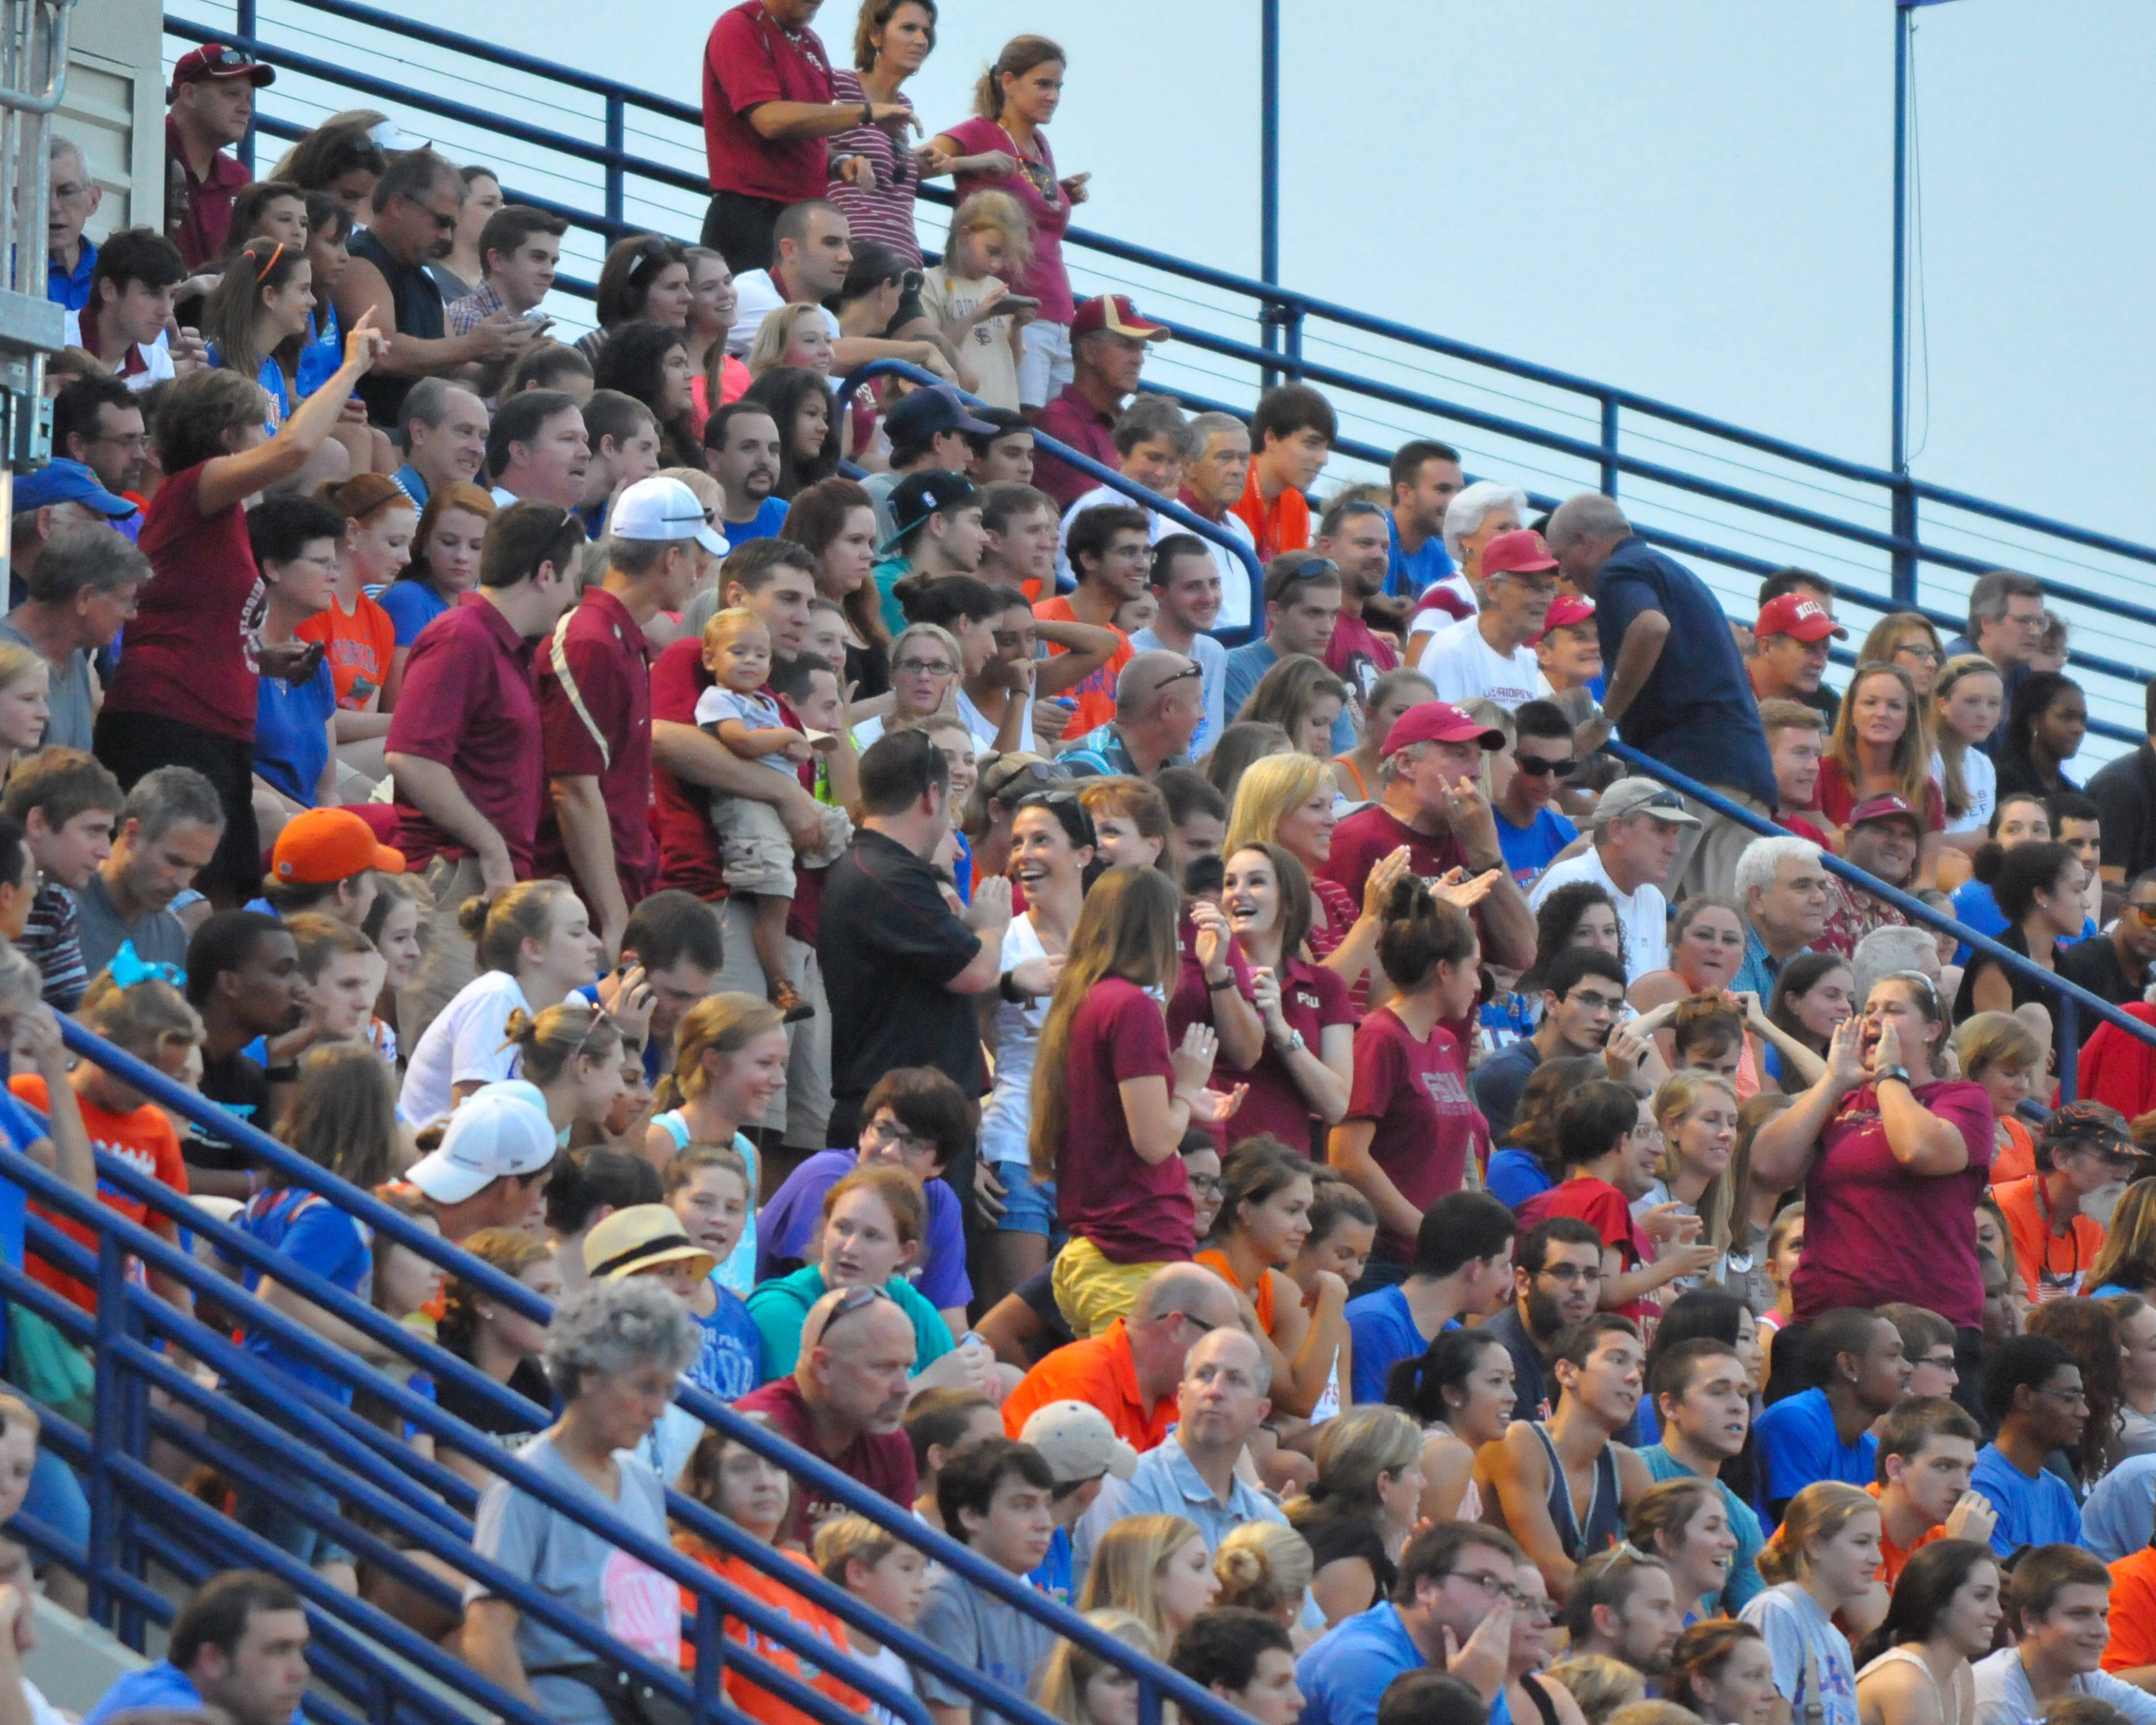 FSU fans in attendance at Pressly Statdium Friday night.